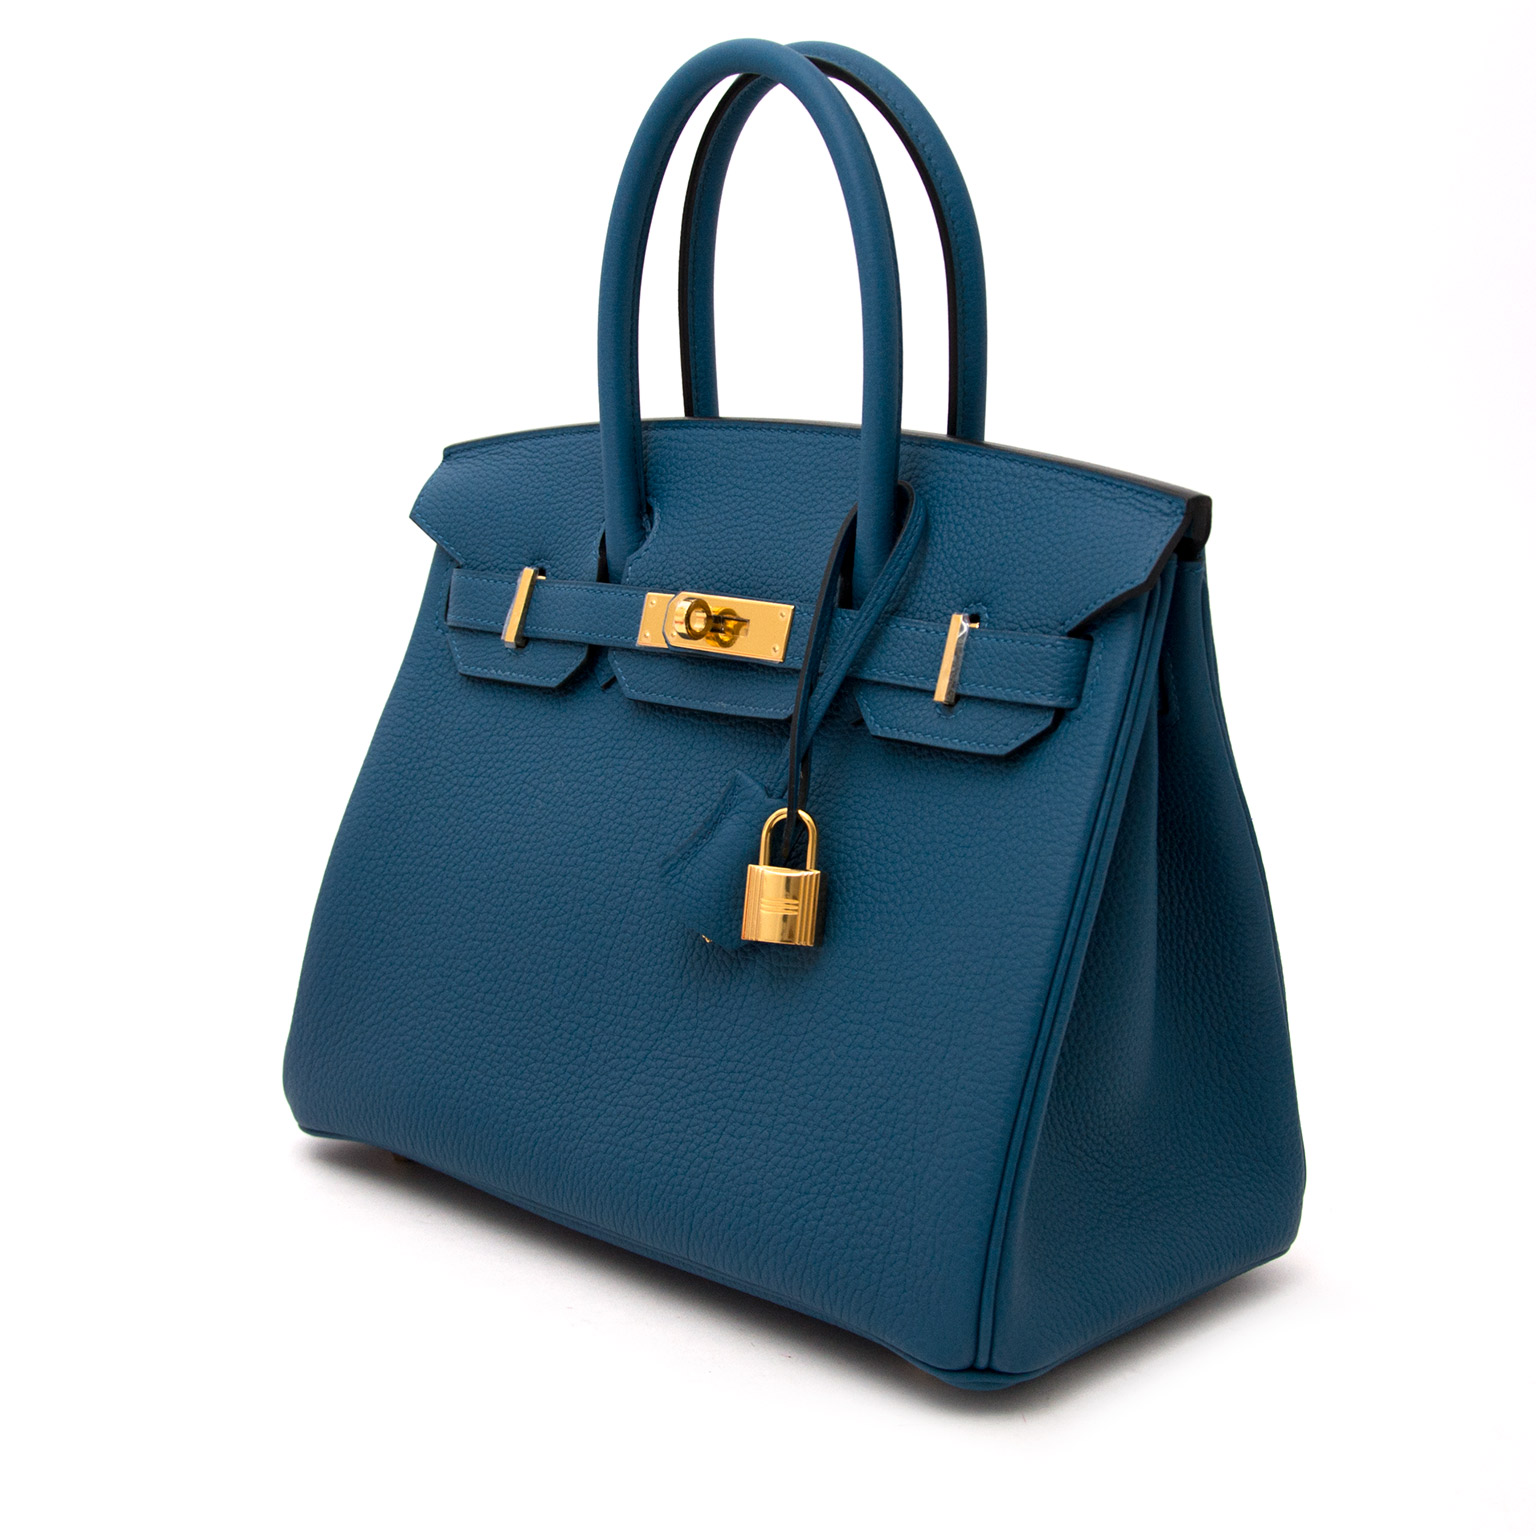 954e83384f Brand new hermes birkin 30 togo cobalt now online at labellov.com Buy and  sell your designer handbags for the best price at labellov.co Hermes Birkin